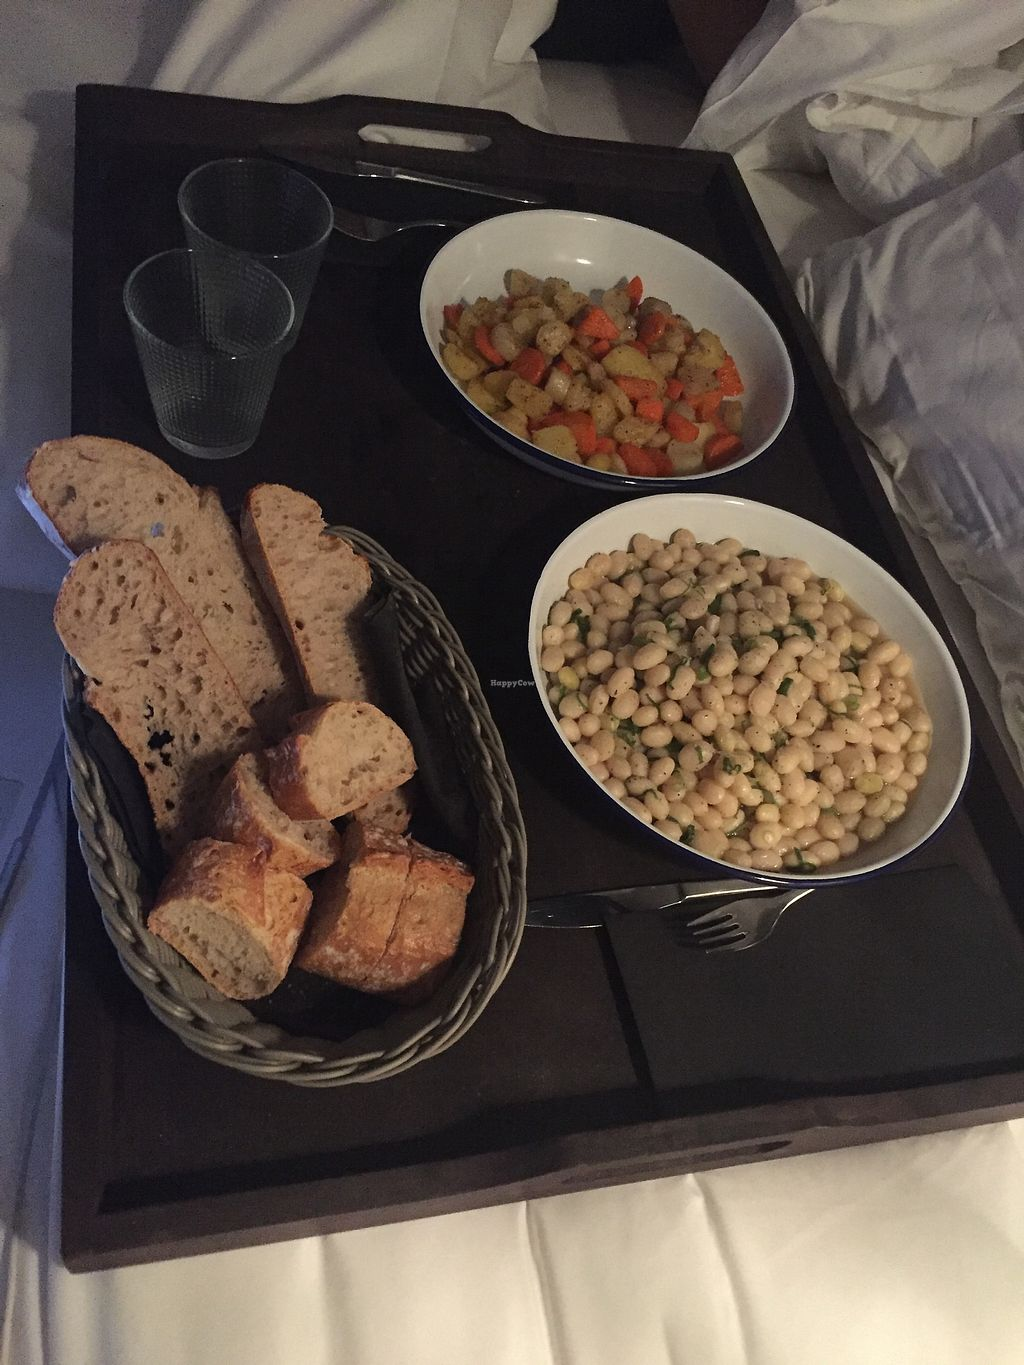 """Photo of Kube Hotel Paris  by <a href=""""/members/profile/TARAMCDONALD"""">TARAMCDONALD</a> <br/>Room service <br/> December 1, 2017  - <a href='/contact/abuse/image/106293/331194'>Report</a>"""